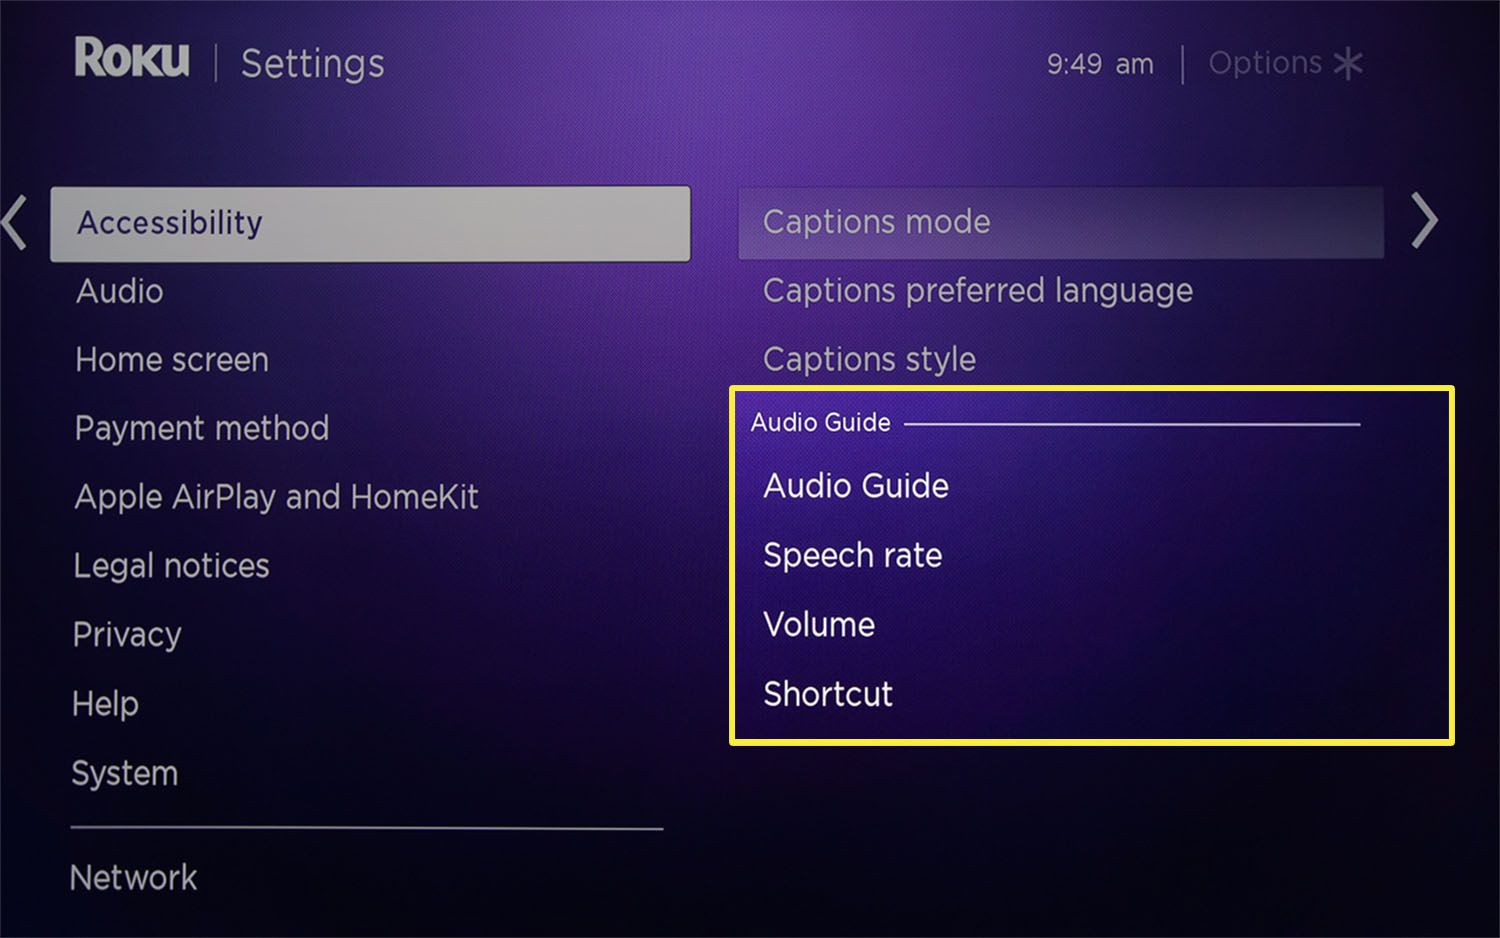 The Audio Guide section of the Roku Accessibility menu.